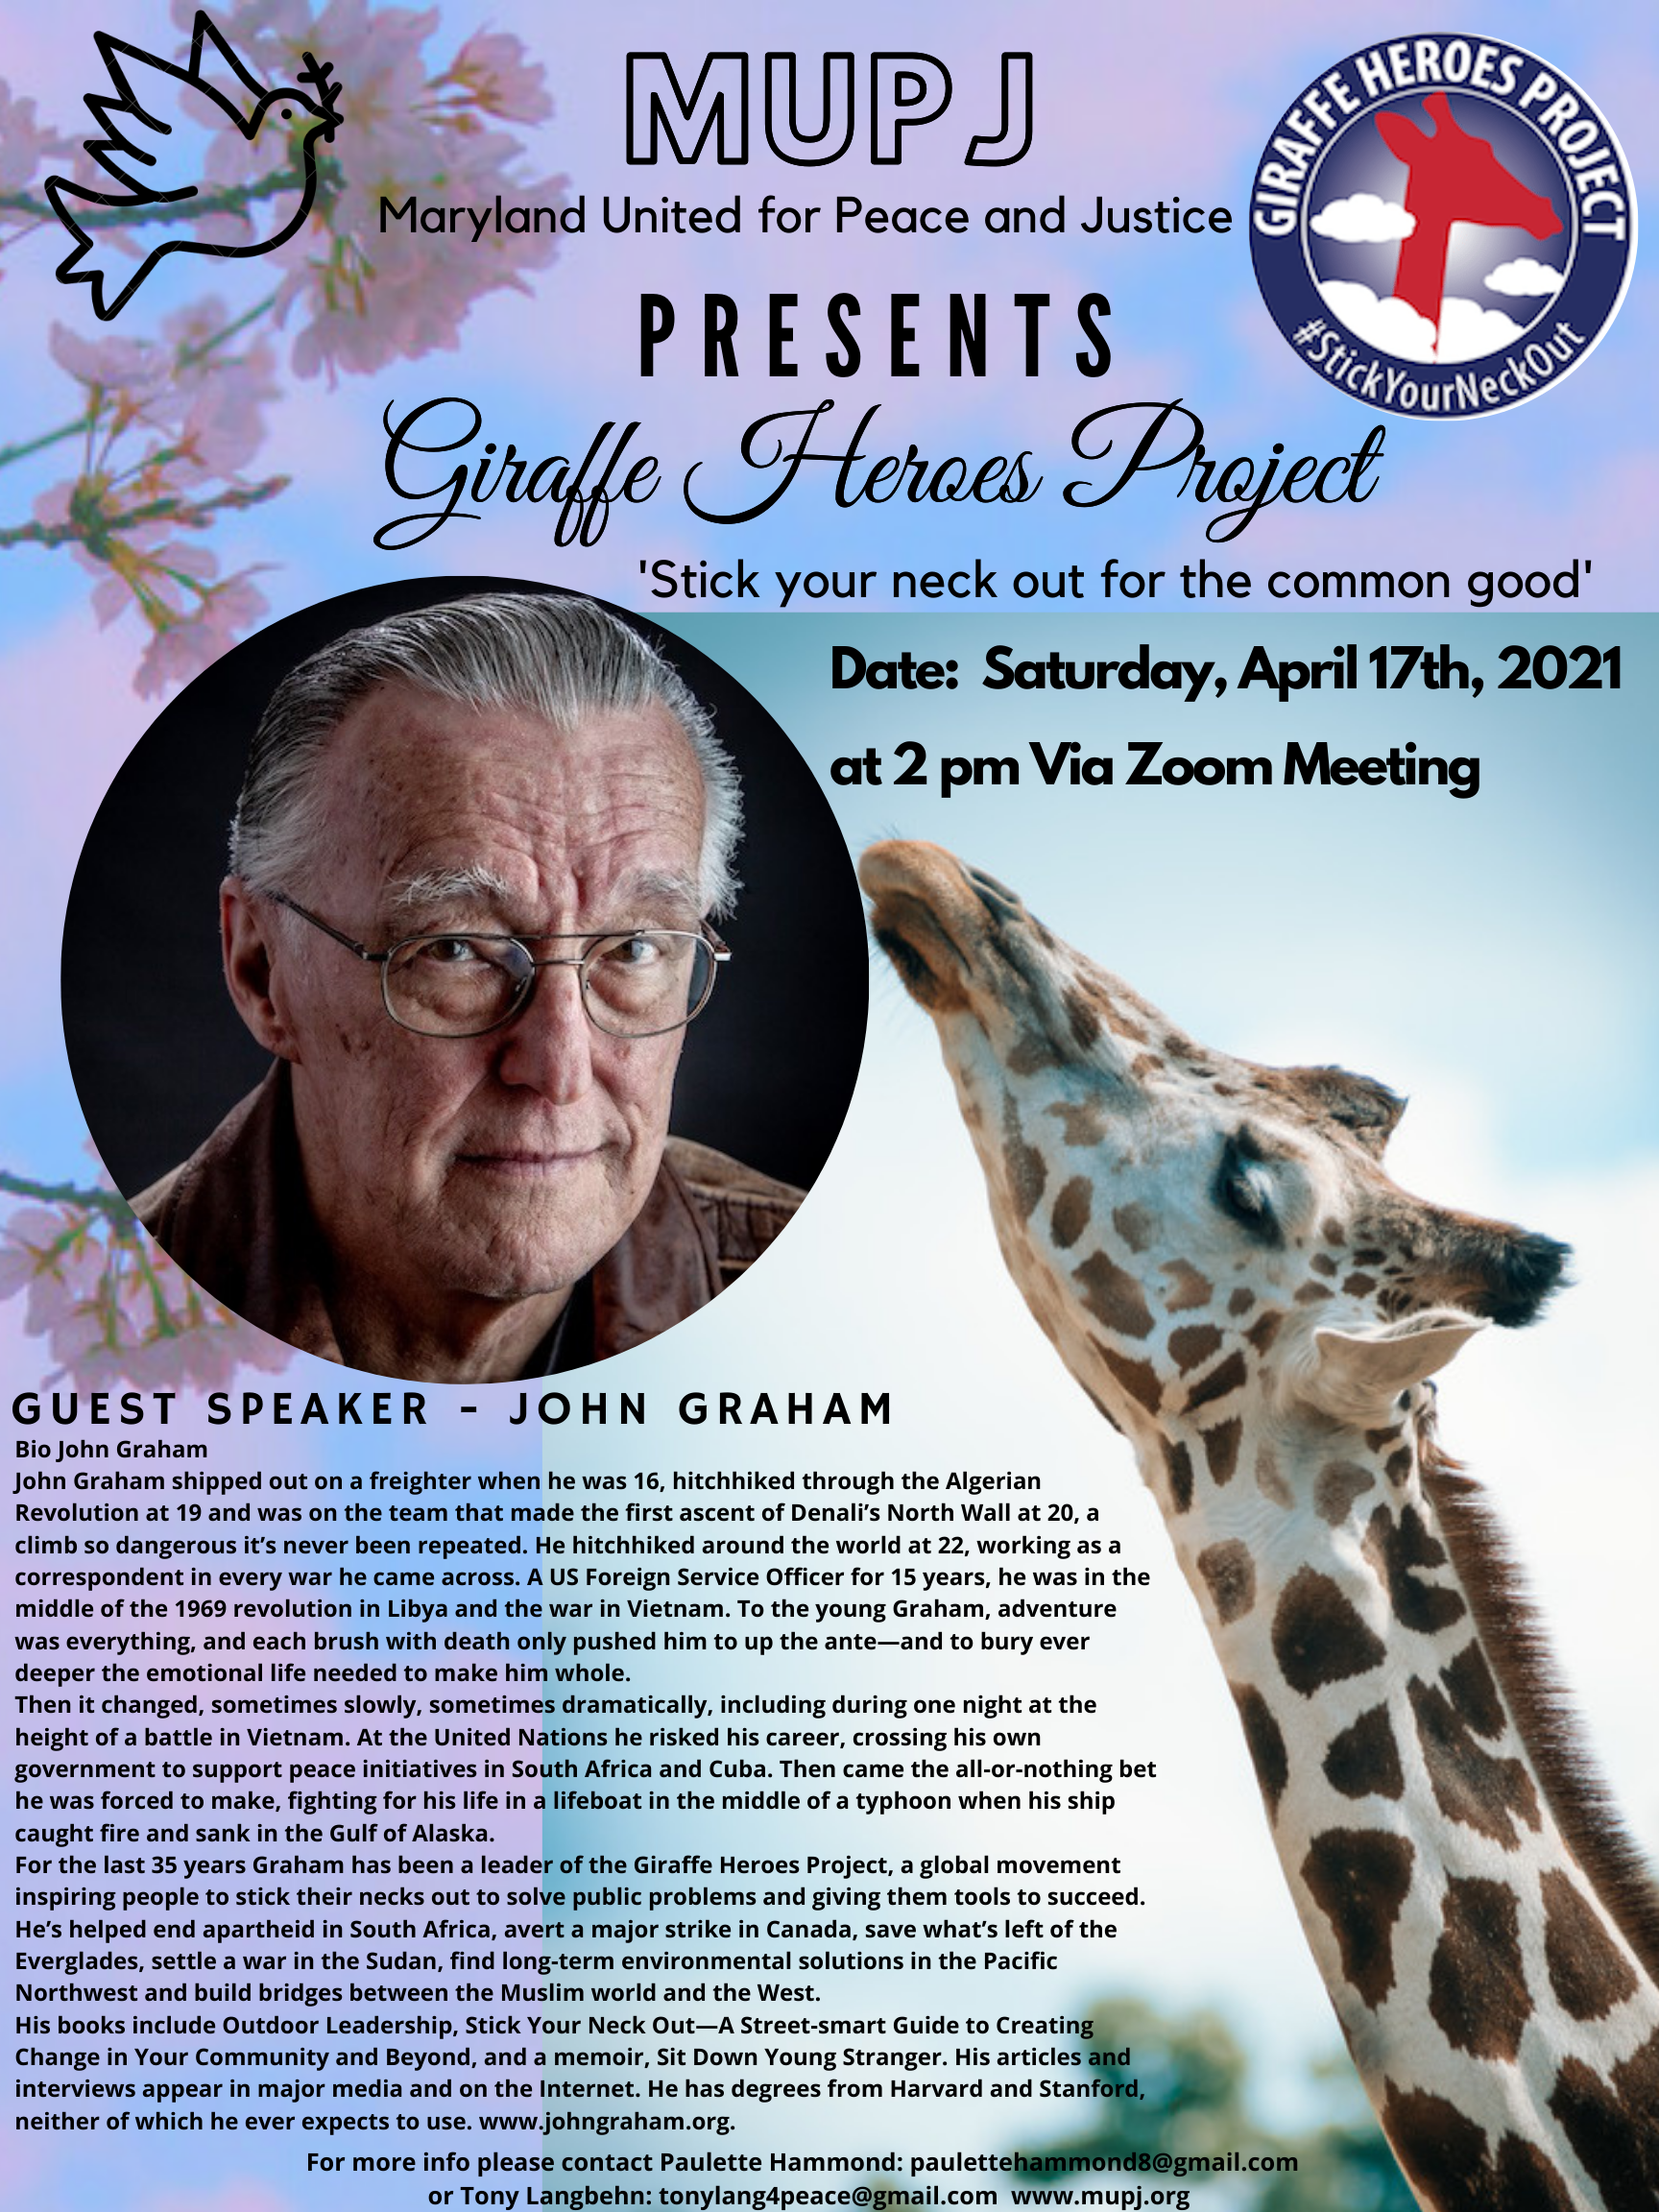 'Stick Your Neck Out For The Common Good'. Maryland United for Peace and Justice MUPJ presents Guest Speaker John Graham to give a talk about the Giraffe Heroes Project on April 17th at 2pm